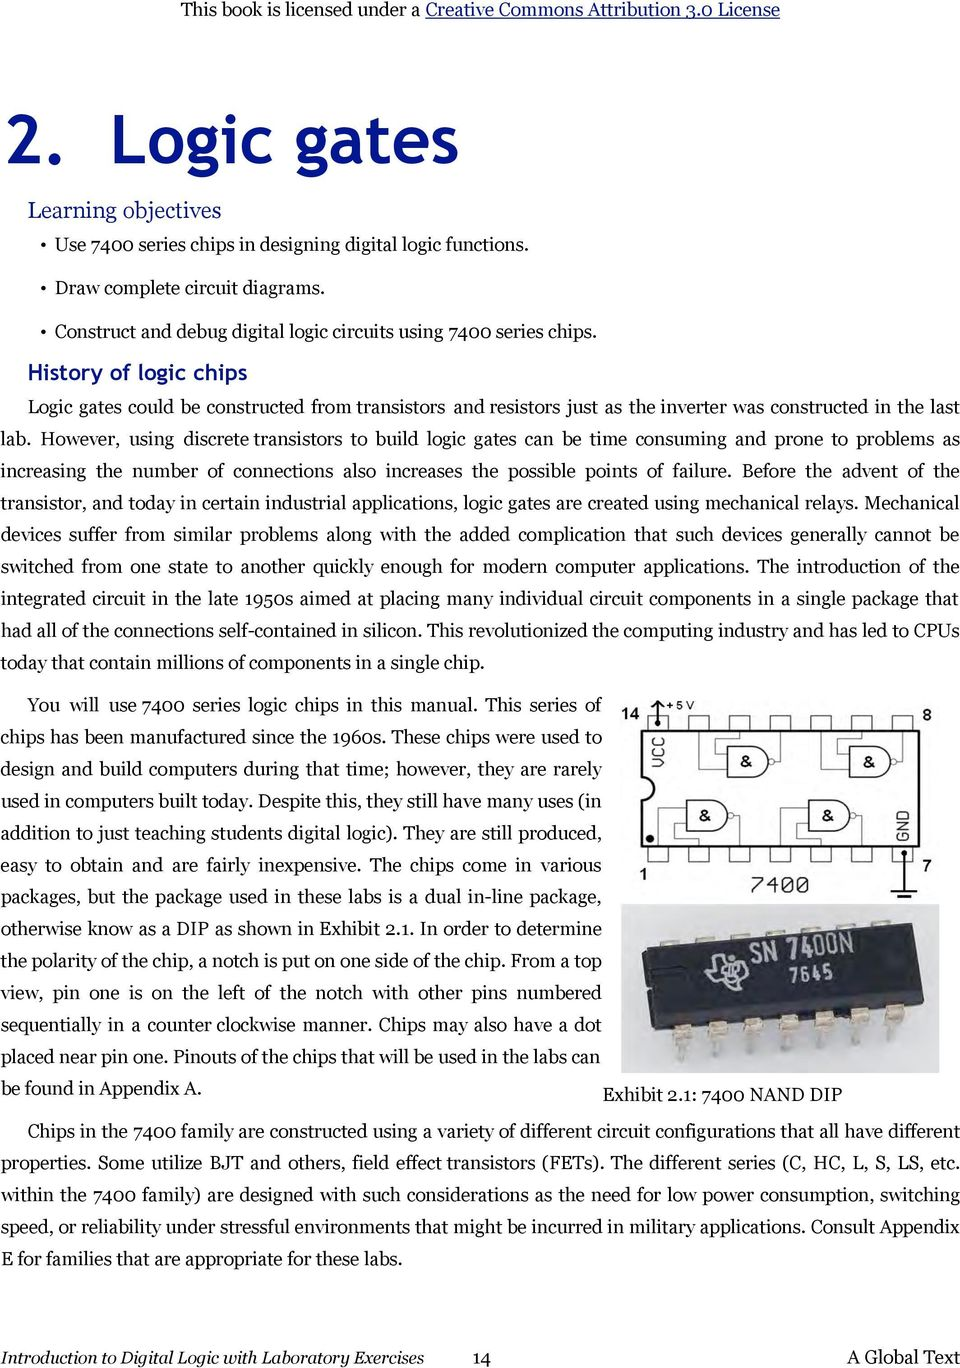 Introduction To Digital Logic With Laboratory Exercises Pdf Circuitlab Toggle Relay Flip Flop However Using Discrete Transistors Build Gates Can Be Time Consuming And Prone